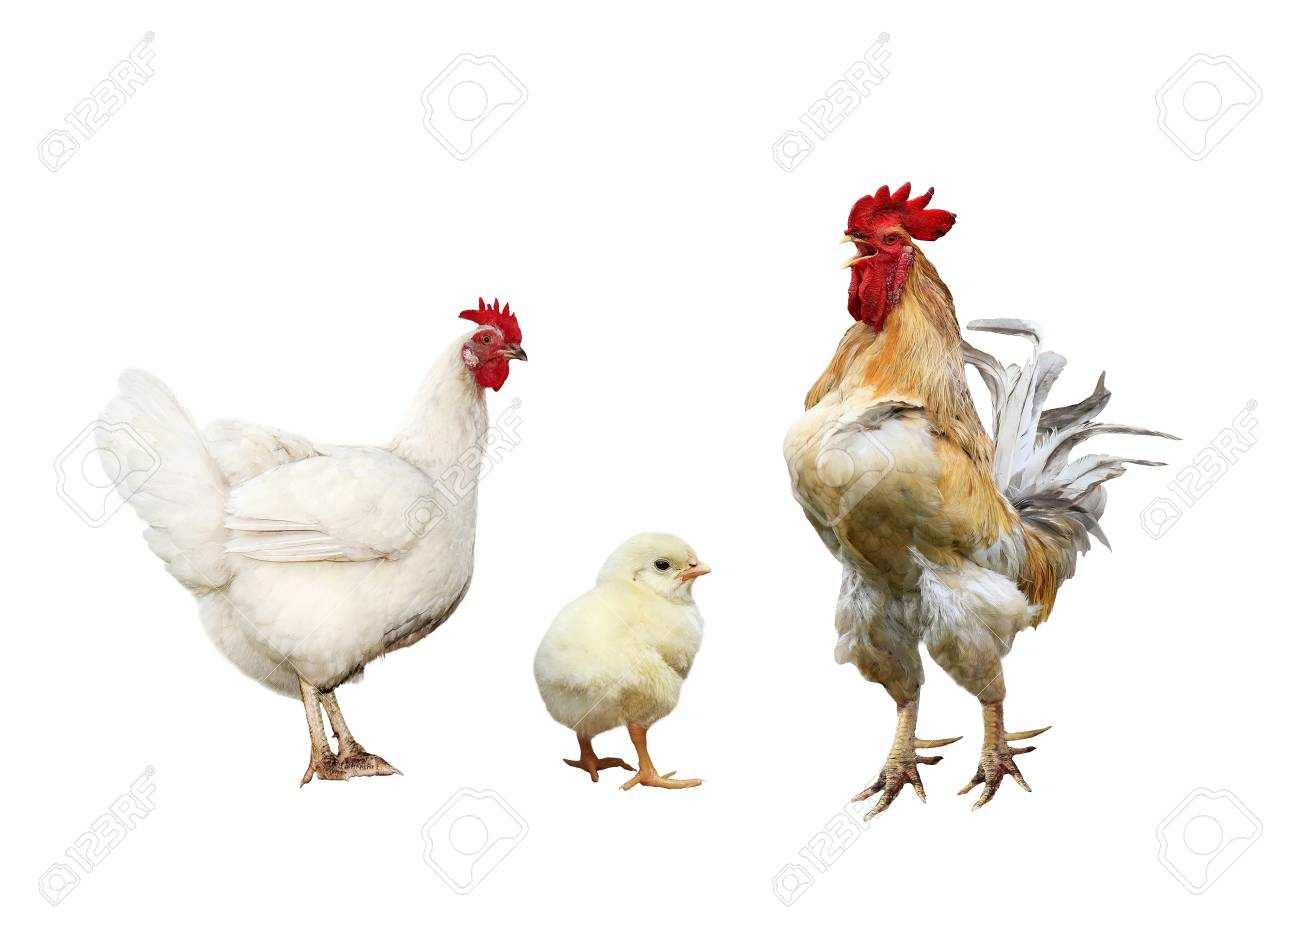 family portrait poultry chicken, red rooster bright yellow little chicken on a white isolated background - 93560316